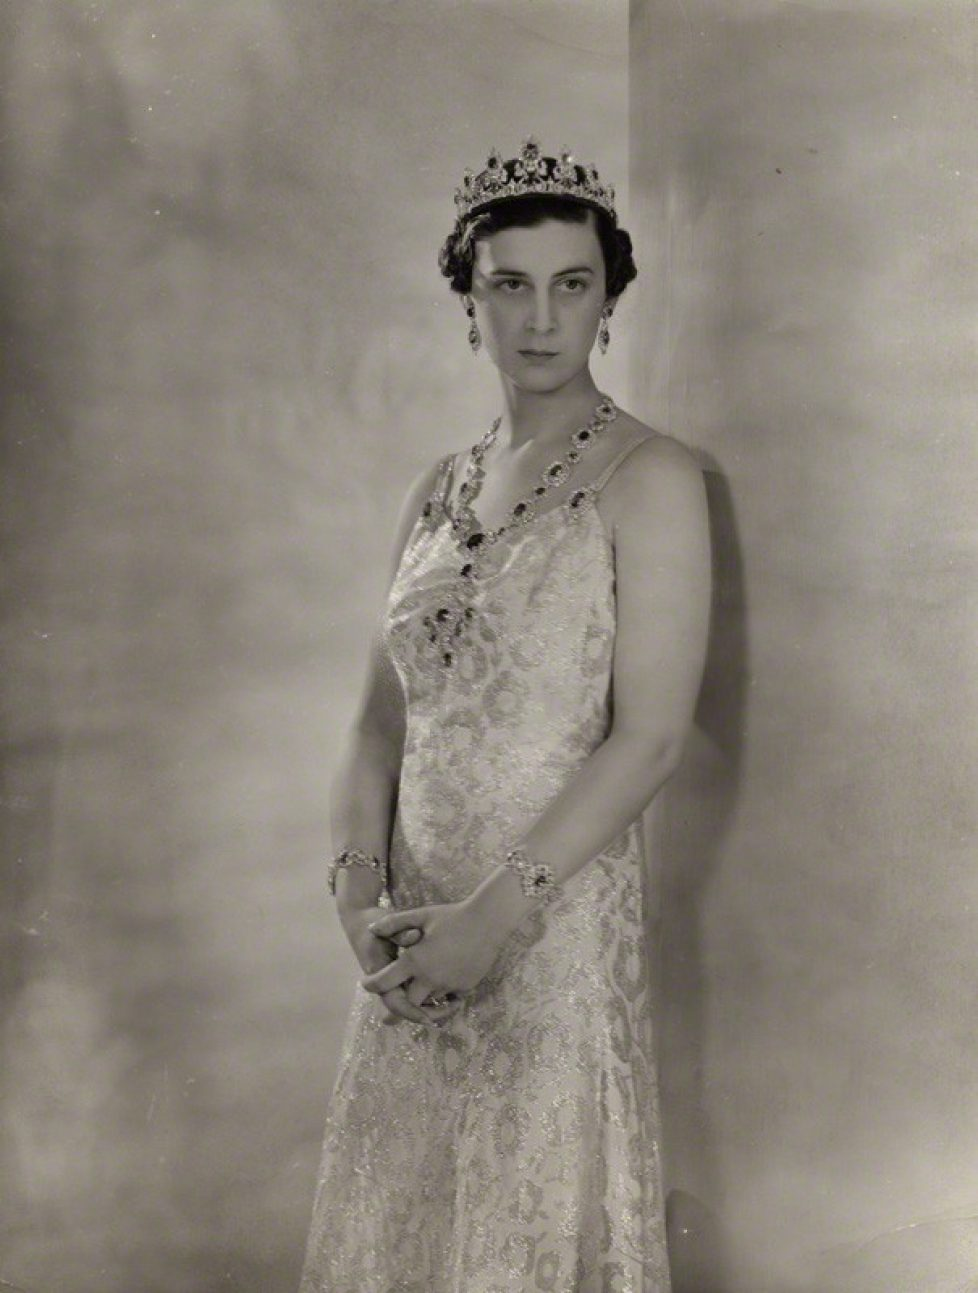 NPG x135725; Princess Marina, Duchess of Kent by Peter North